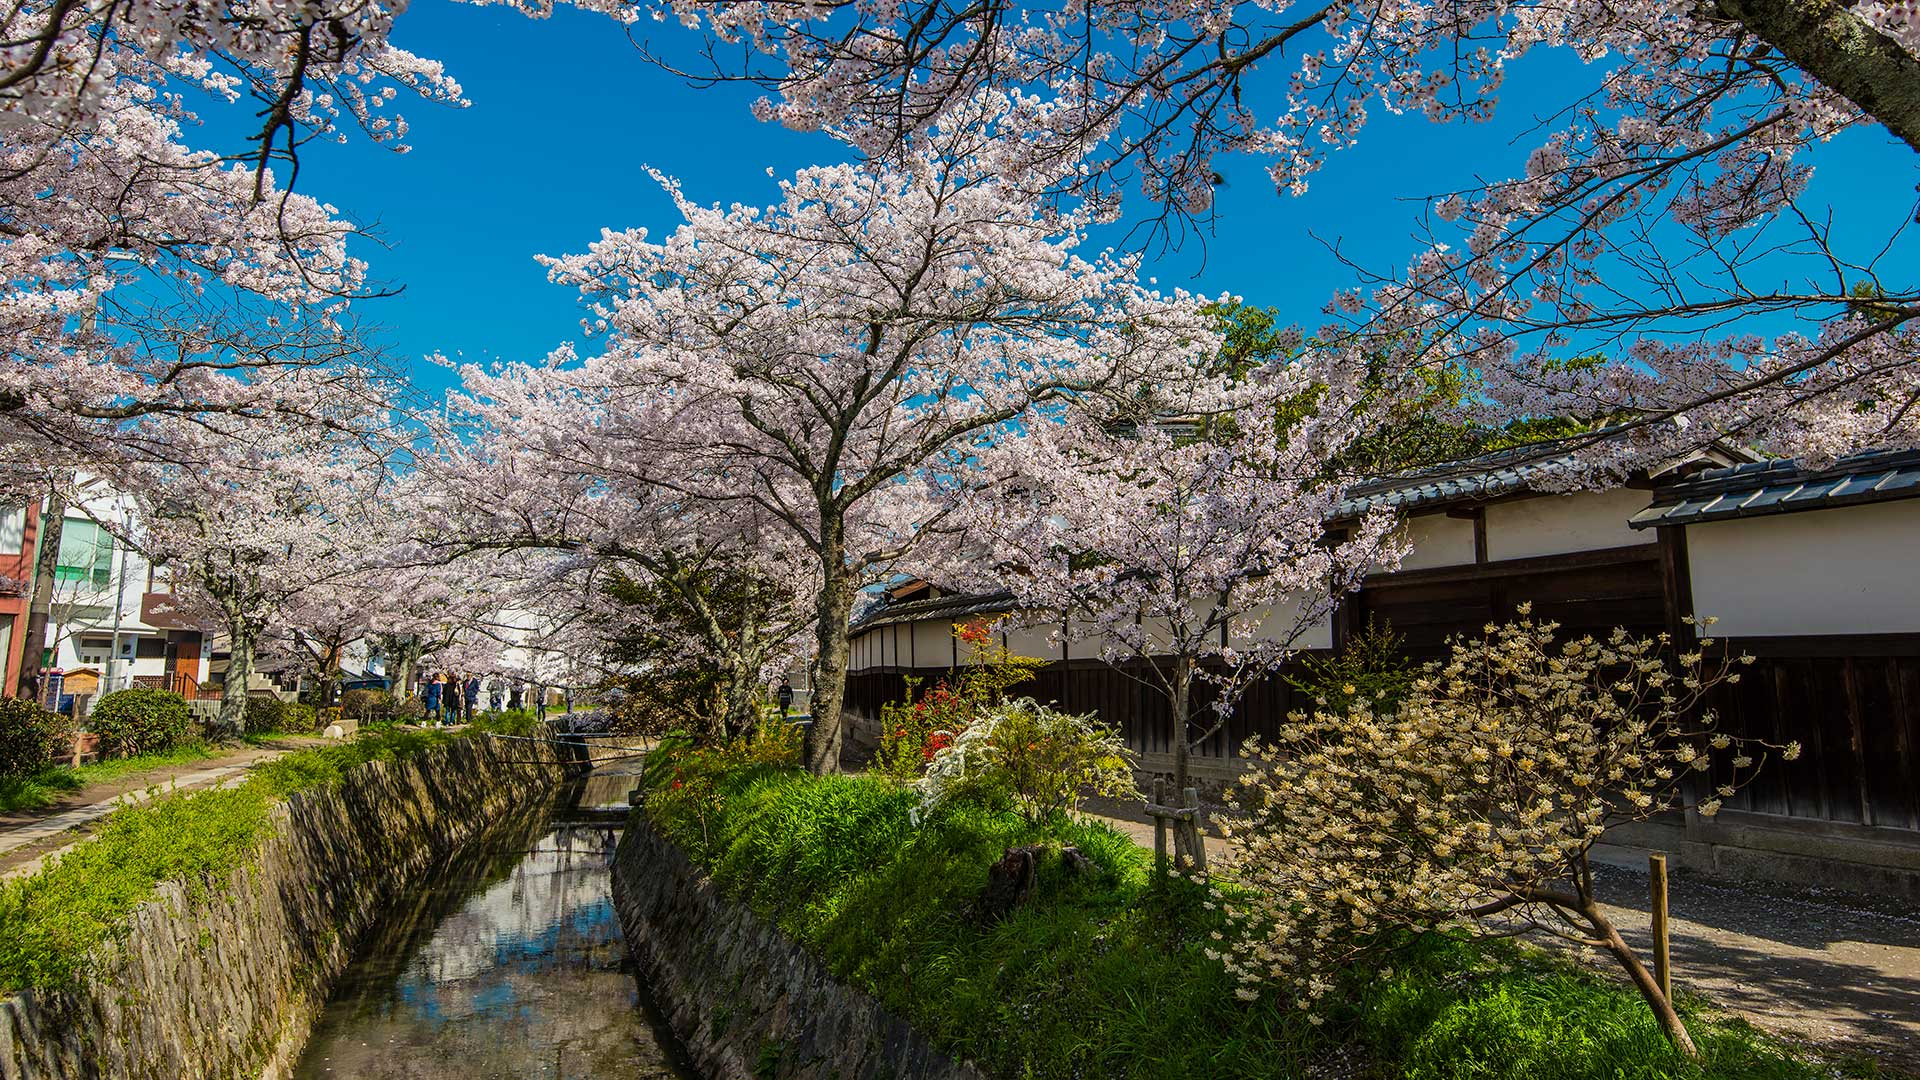 Blooming cherry trees in springtime along the Tetsugaku-no-Michi